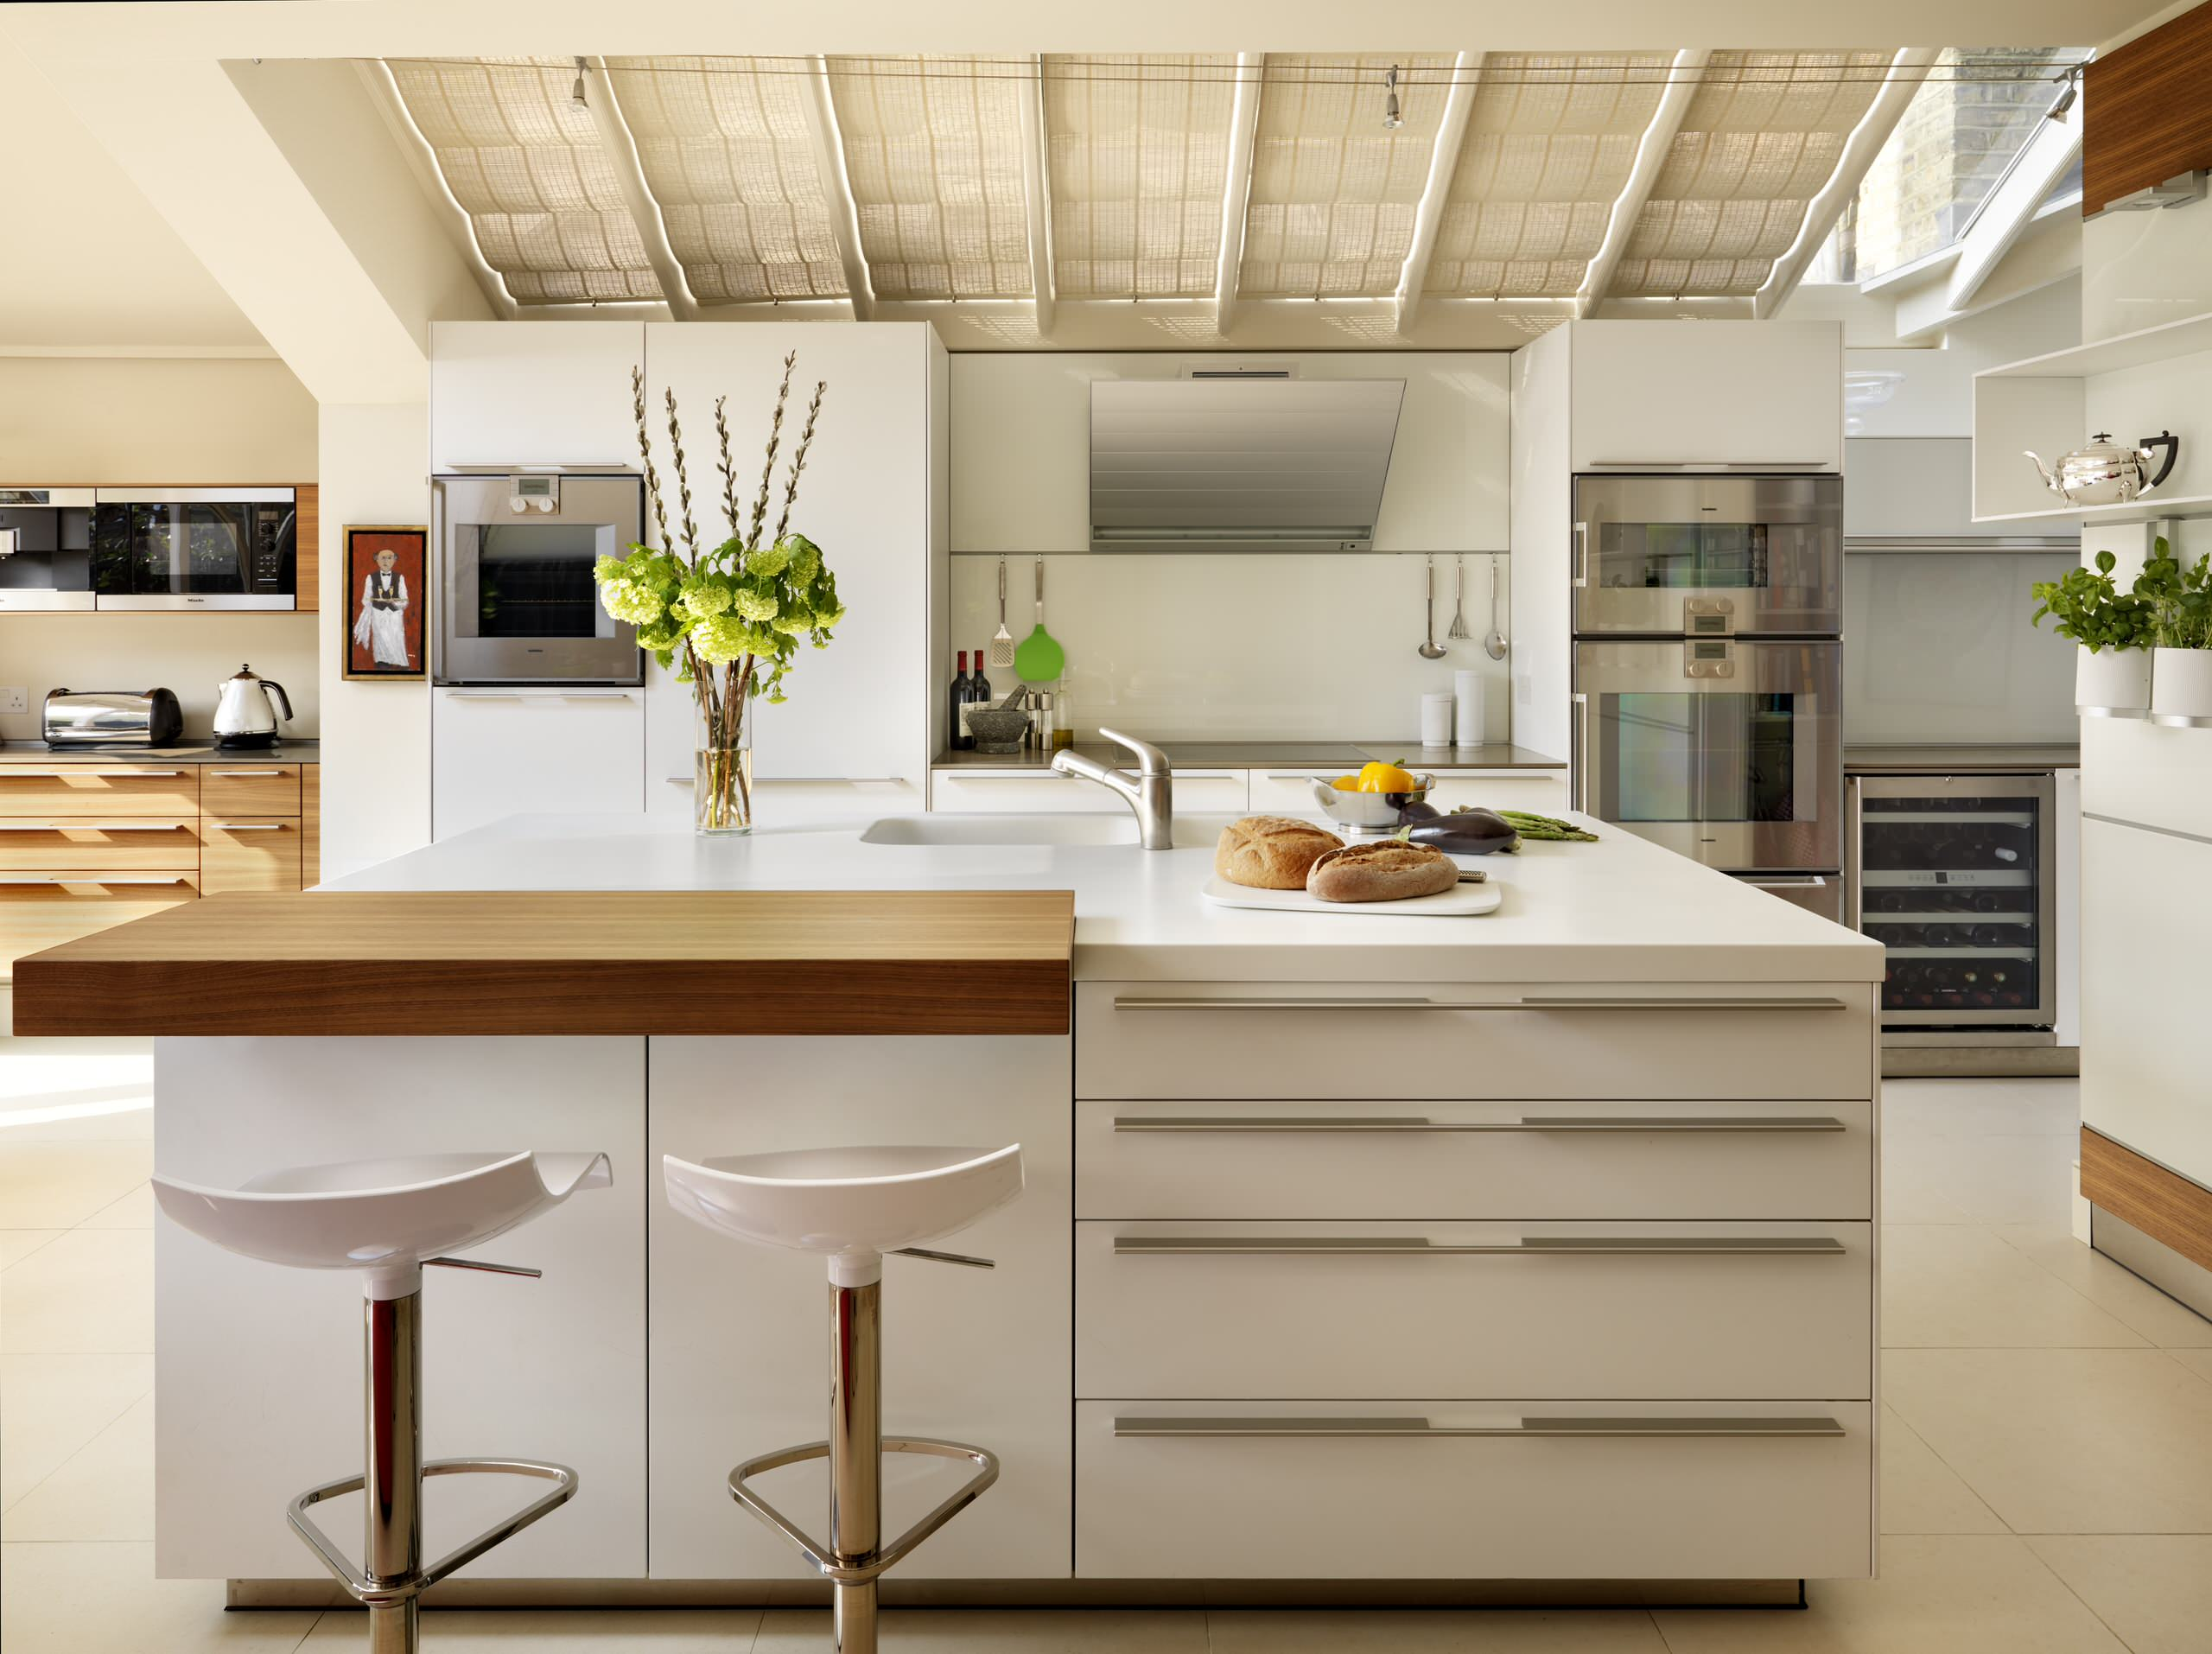 Veneer Bartop Creates A Social Seating Arrangement In This London Town House Kit Contemporary Kitchen London By Hobsons Choice Houzz